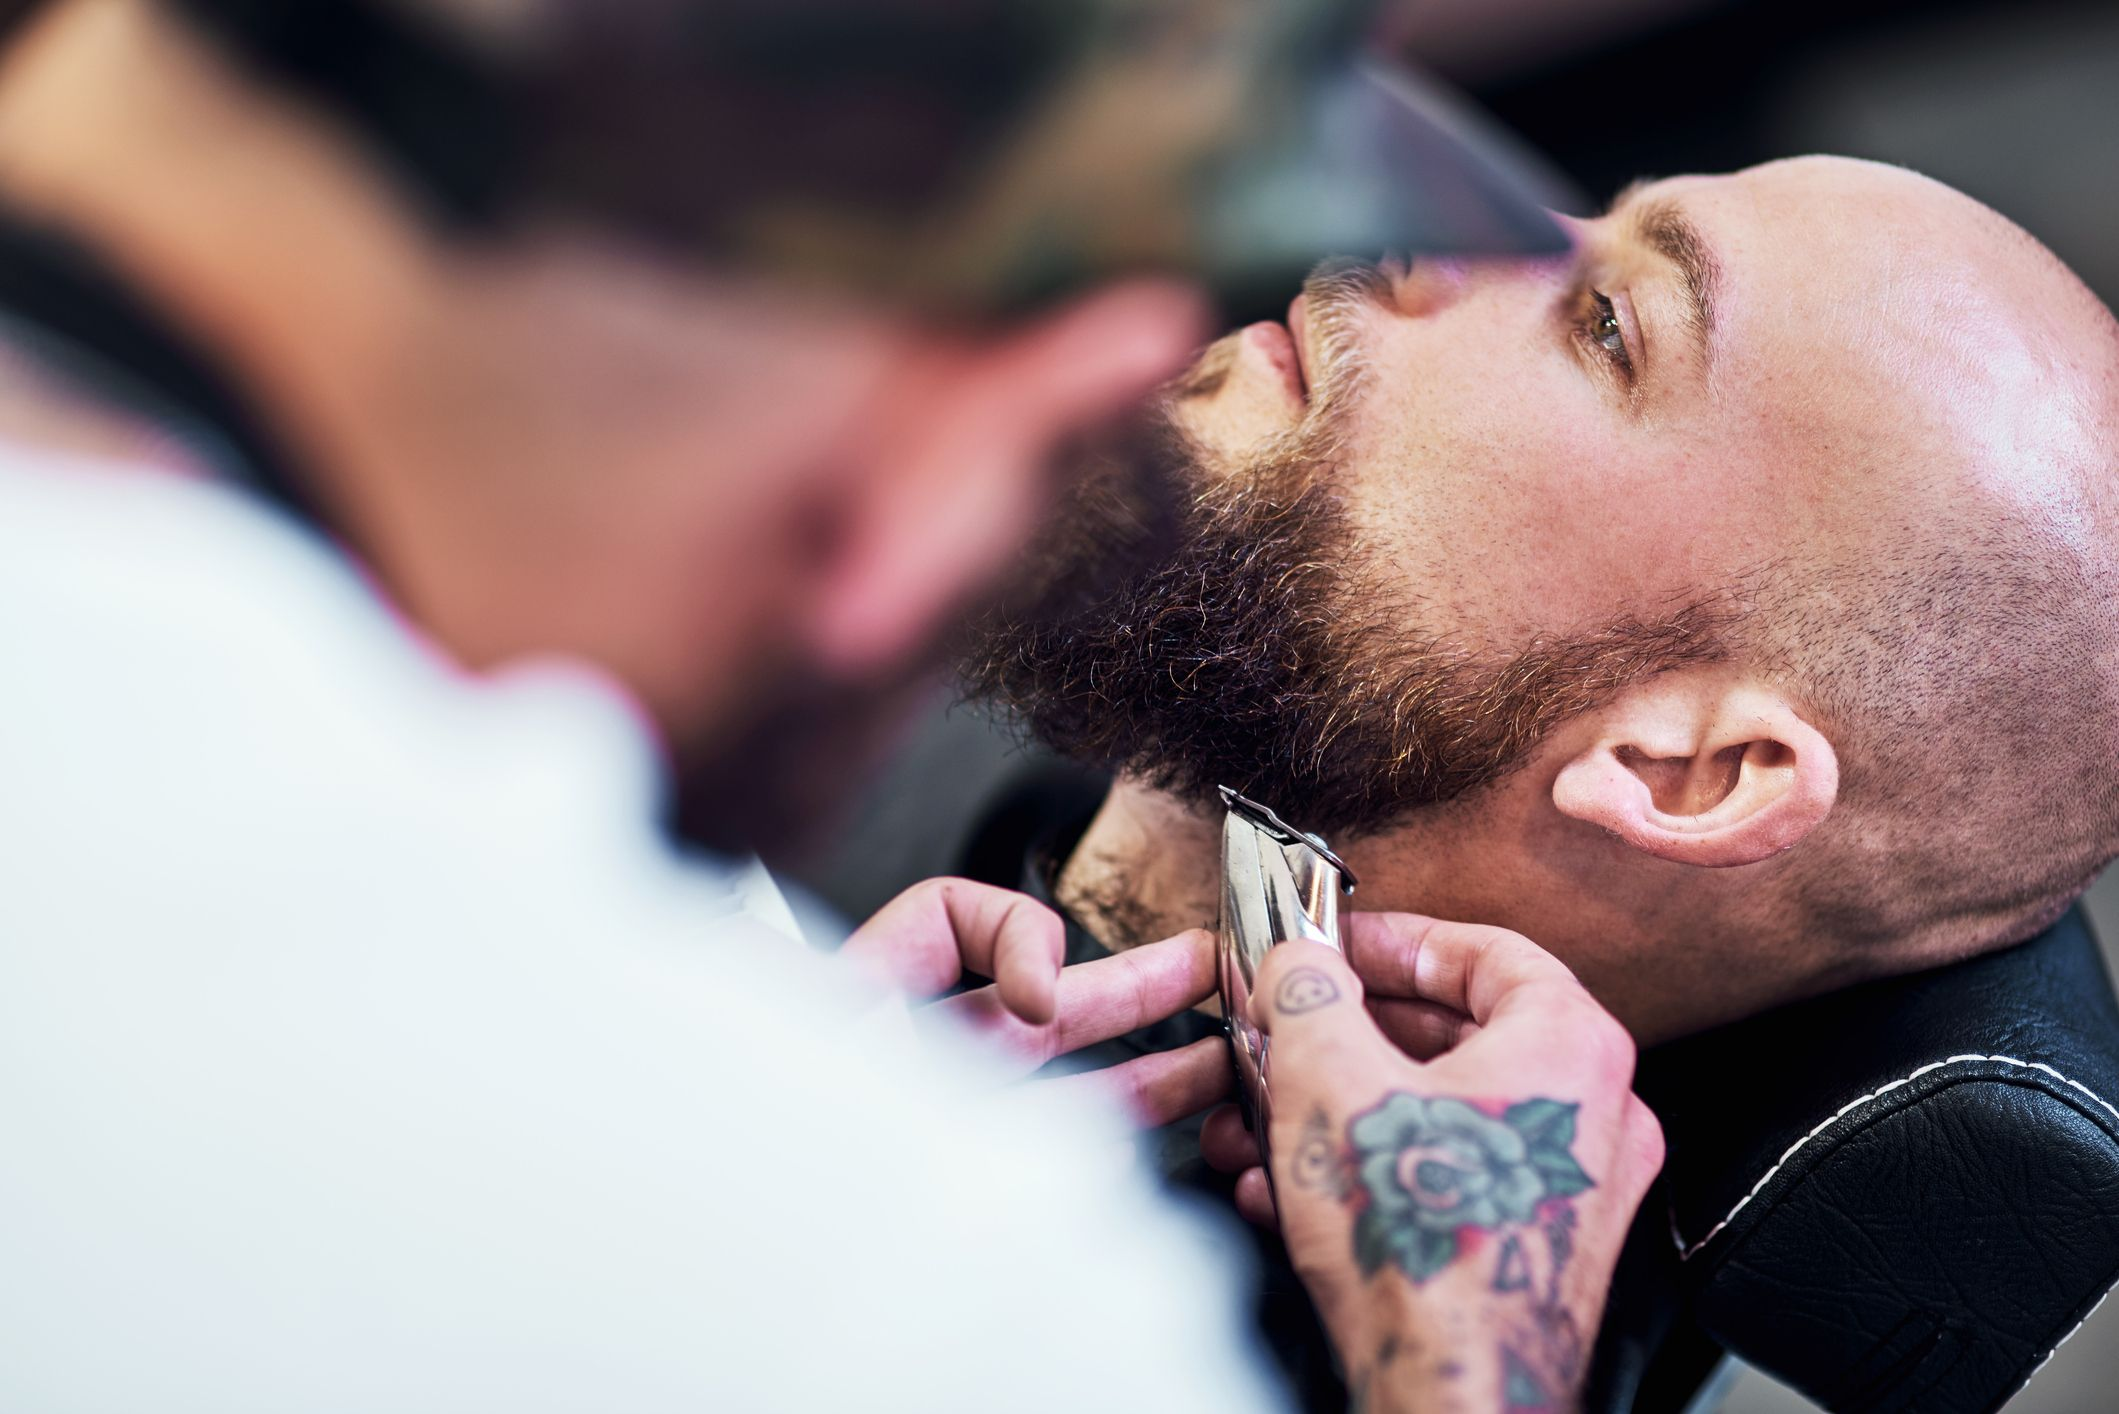 How to Face Your Beard, According to Experts